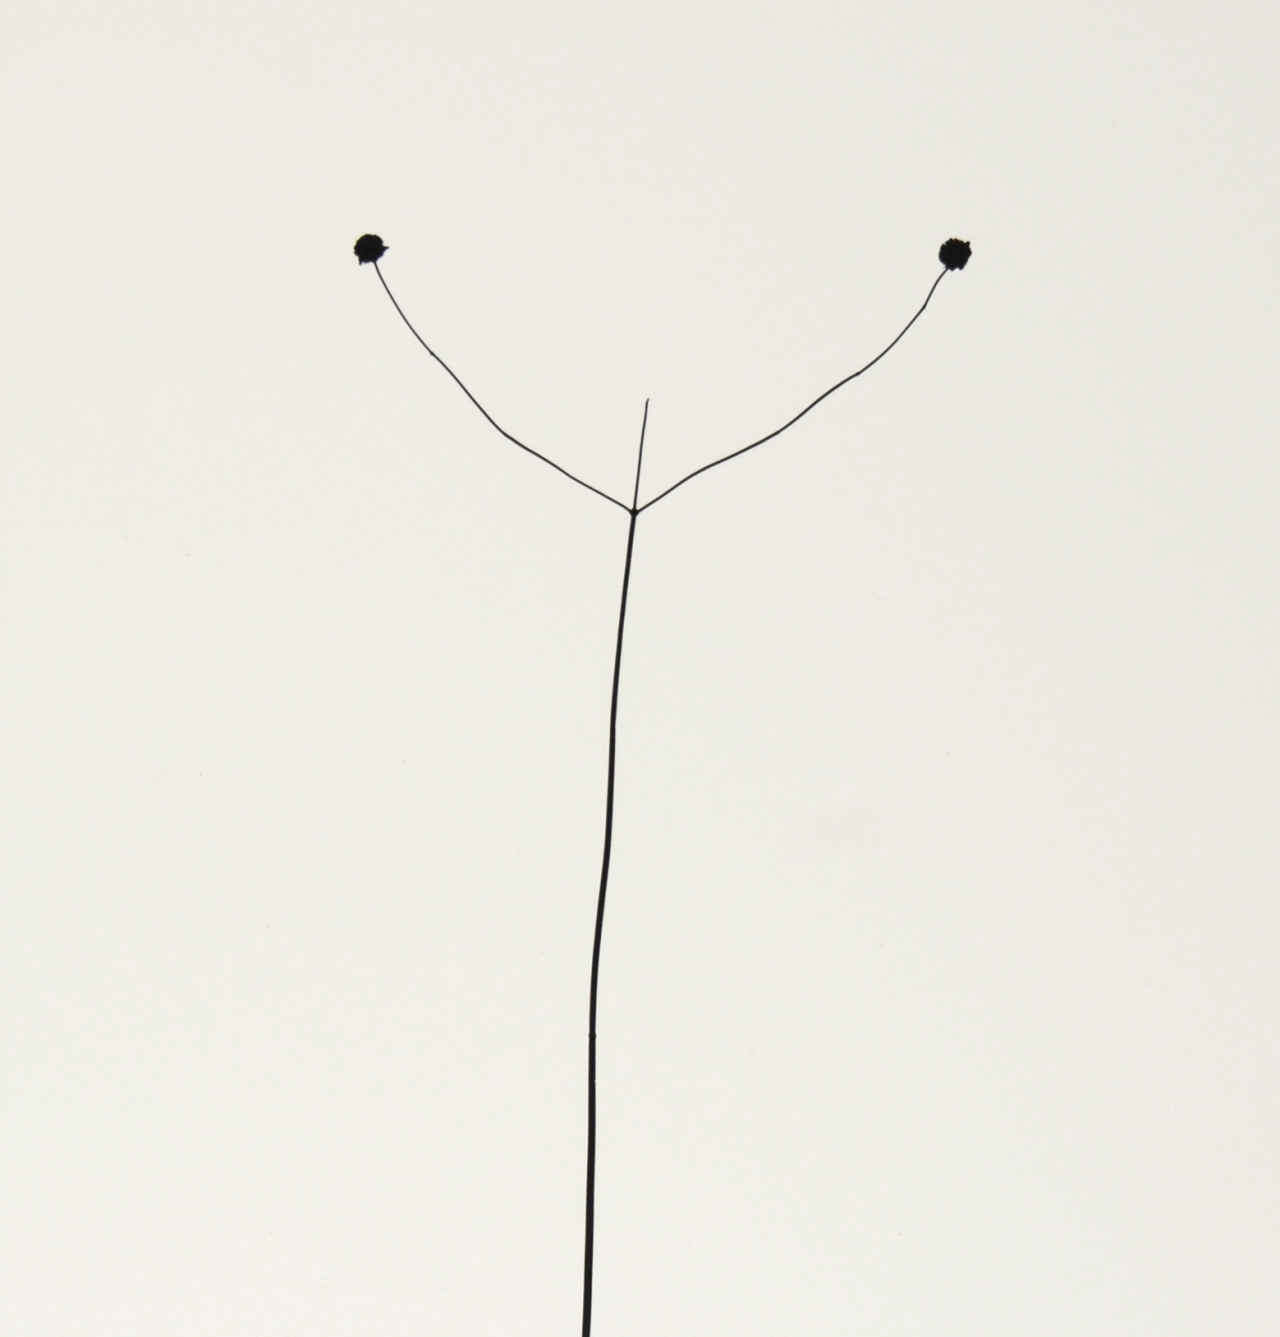 Harry Callahan, Weed Against Sky, Detroit - The South Edition